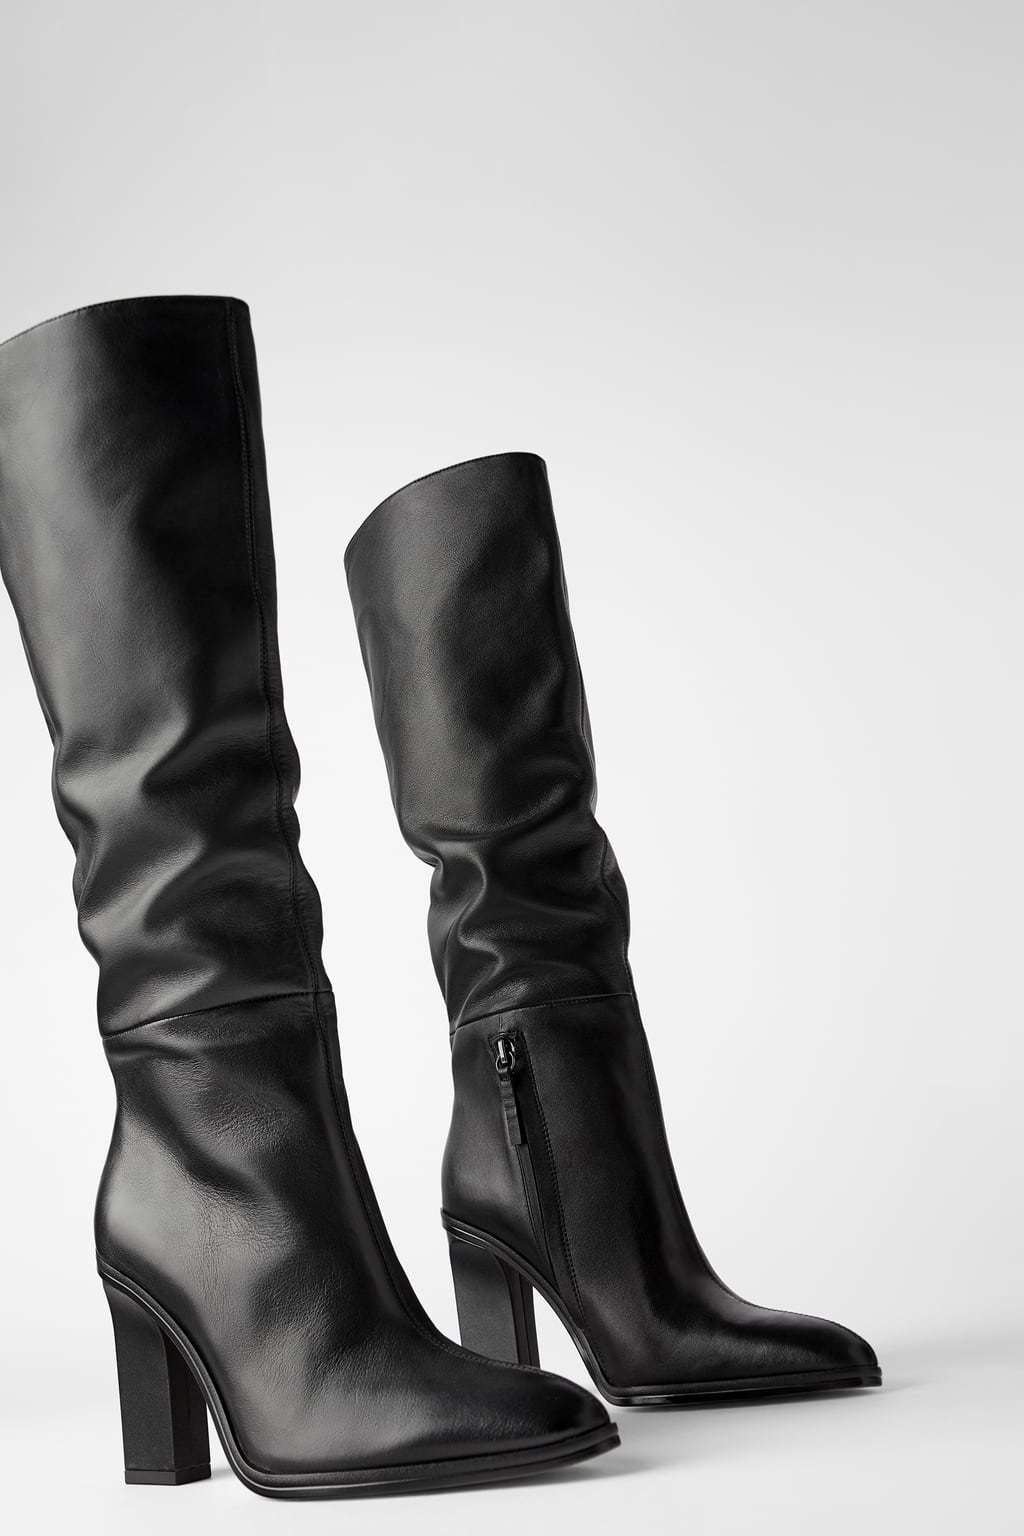 Zara's slouchy leather boots